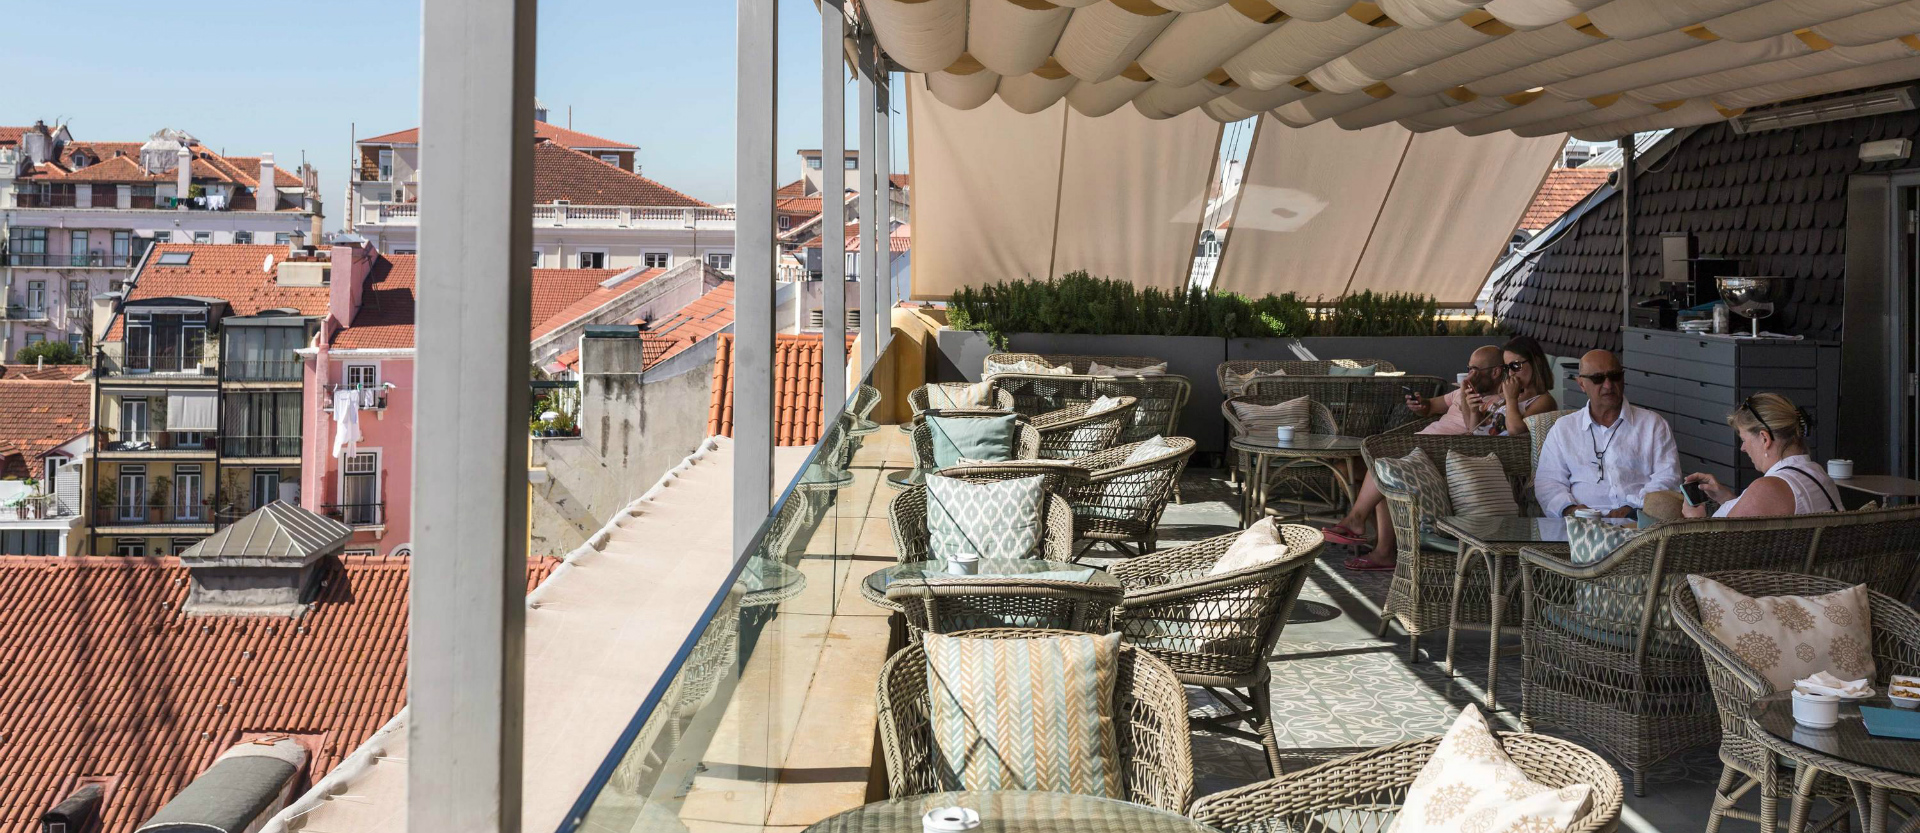 Best rooftops in Portugal: Terraço BA what to do in lisbon What To Do In Lisbon: 48 Hours In The Capital Carrocel 2 73